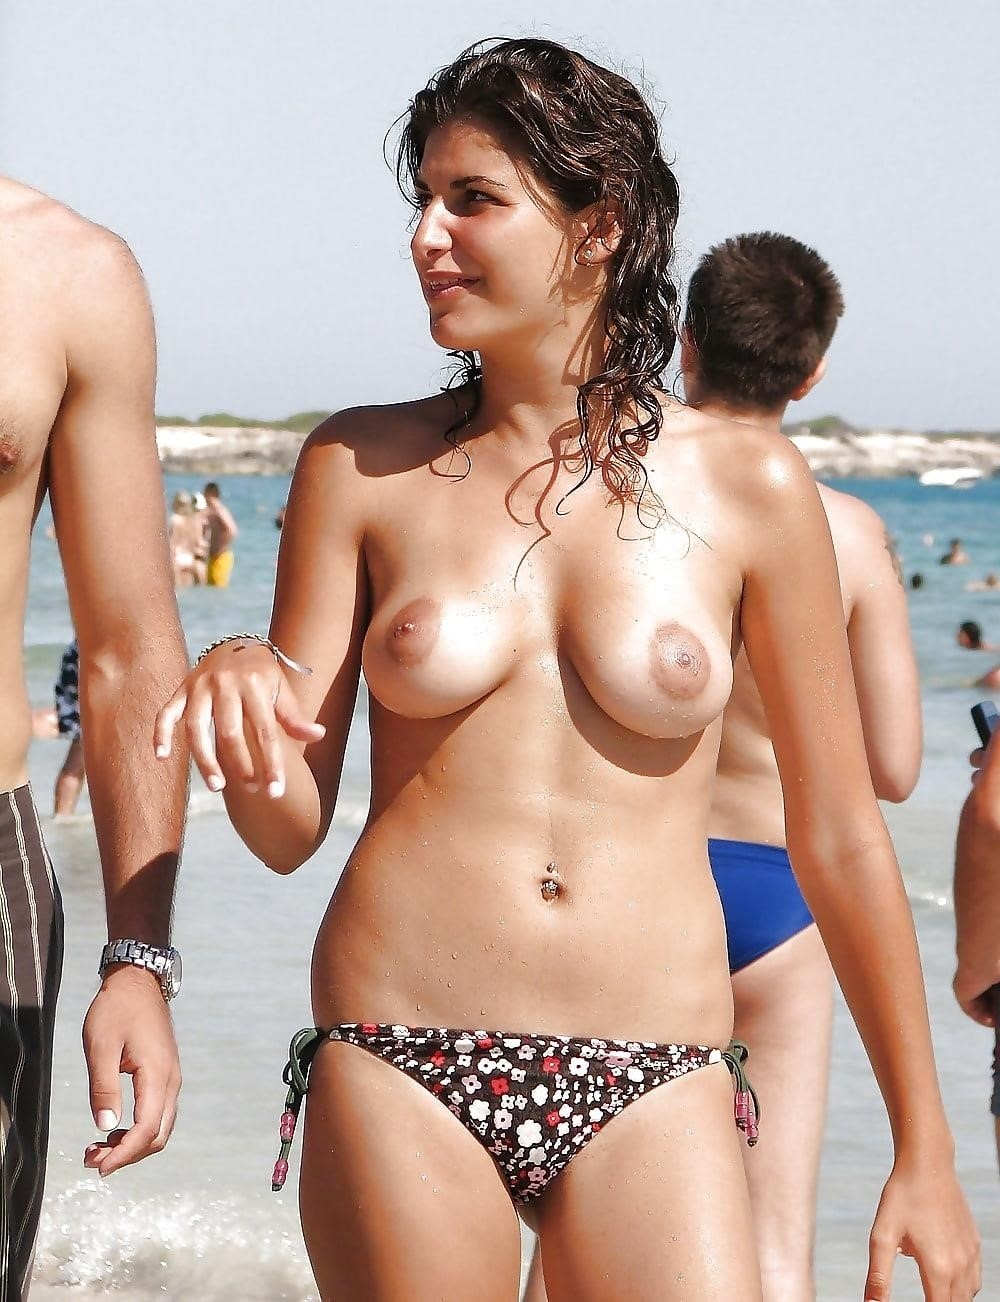 Big boobs nude on beach-6861